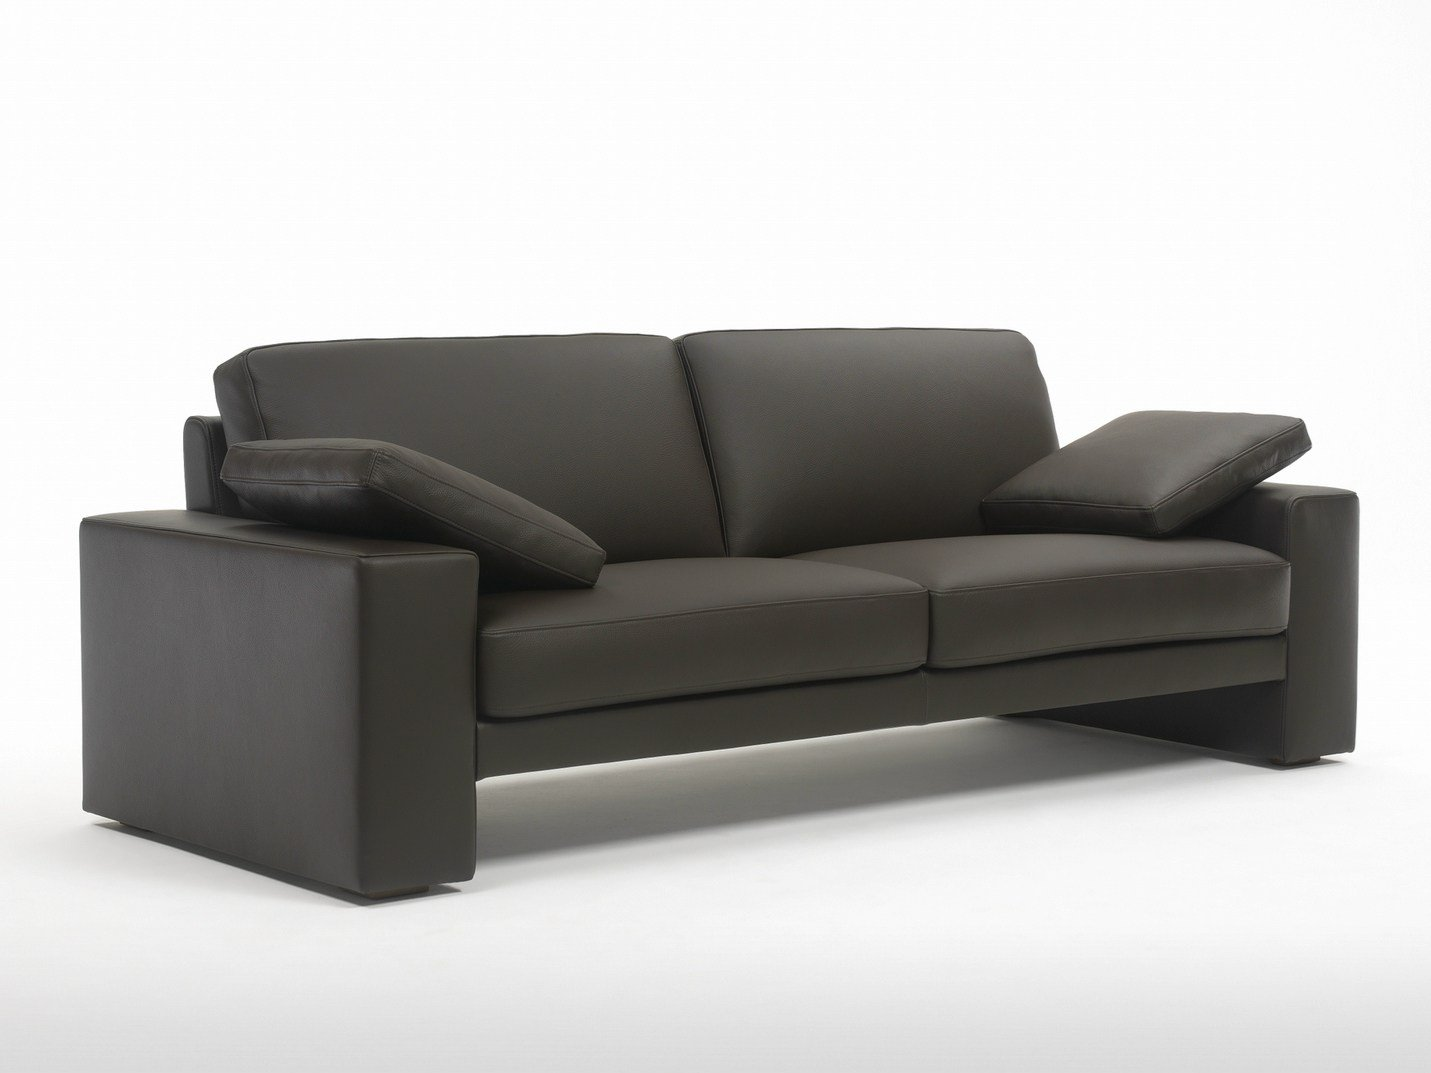 Leather sofa puro by giulio marelli italia design r d studio emme Puro sofa hersteller